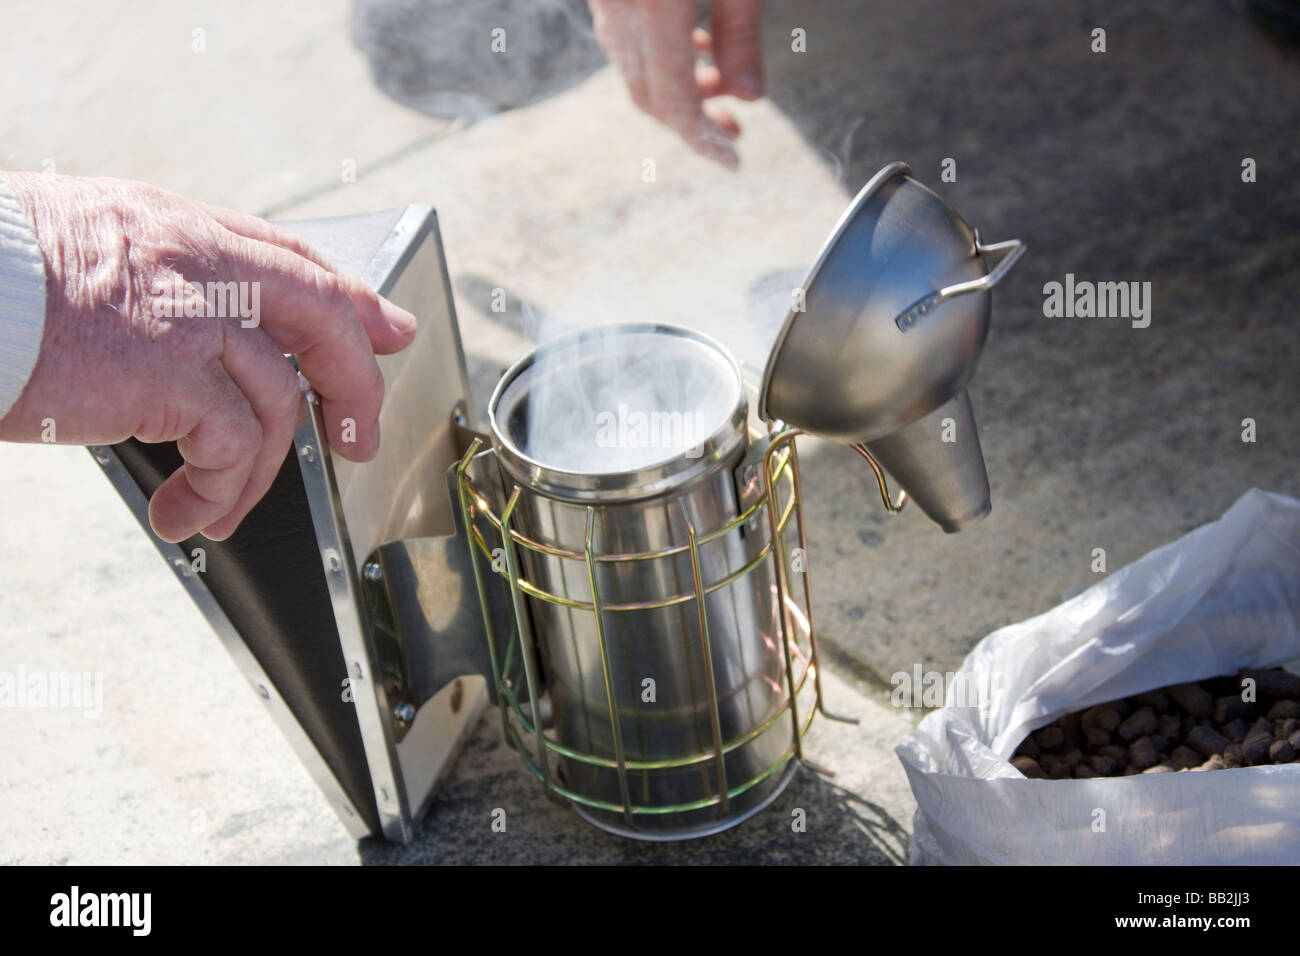 Pumping air while lighting the smoker used to calm Bees, in preparation to inspect a bee hive. - Stock Image